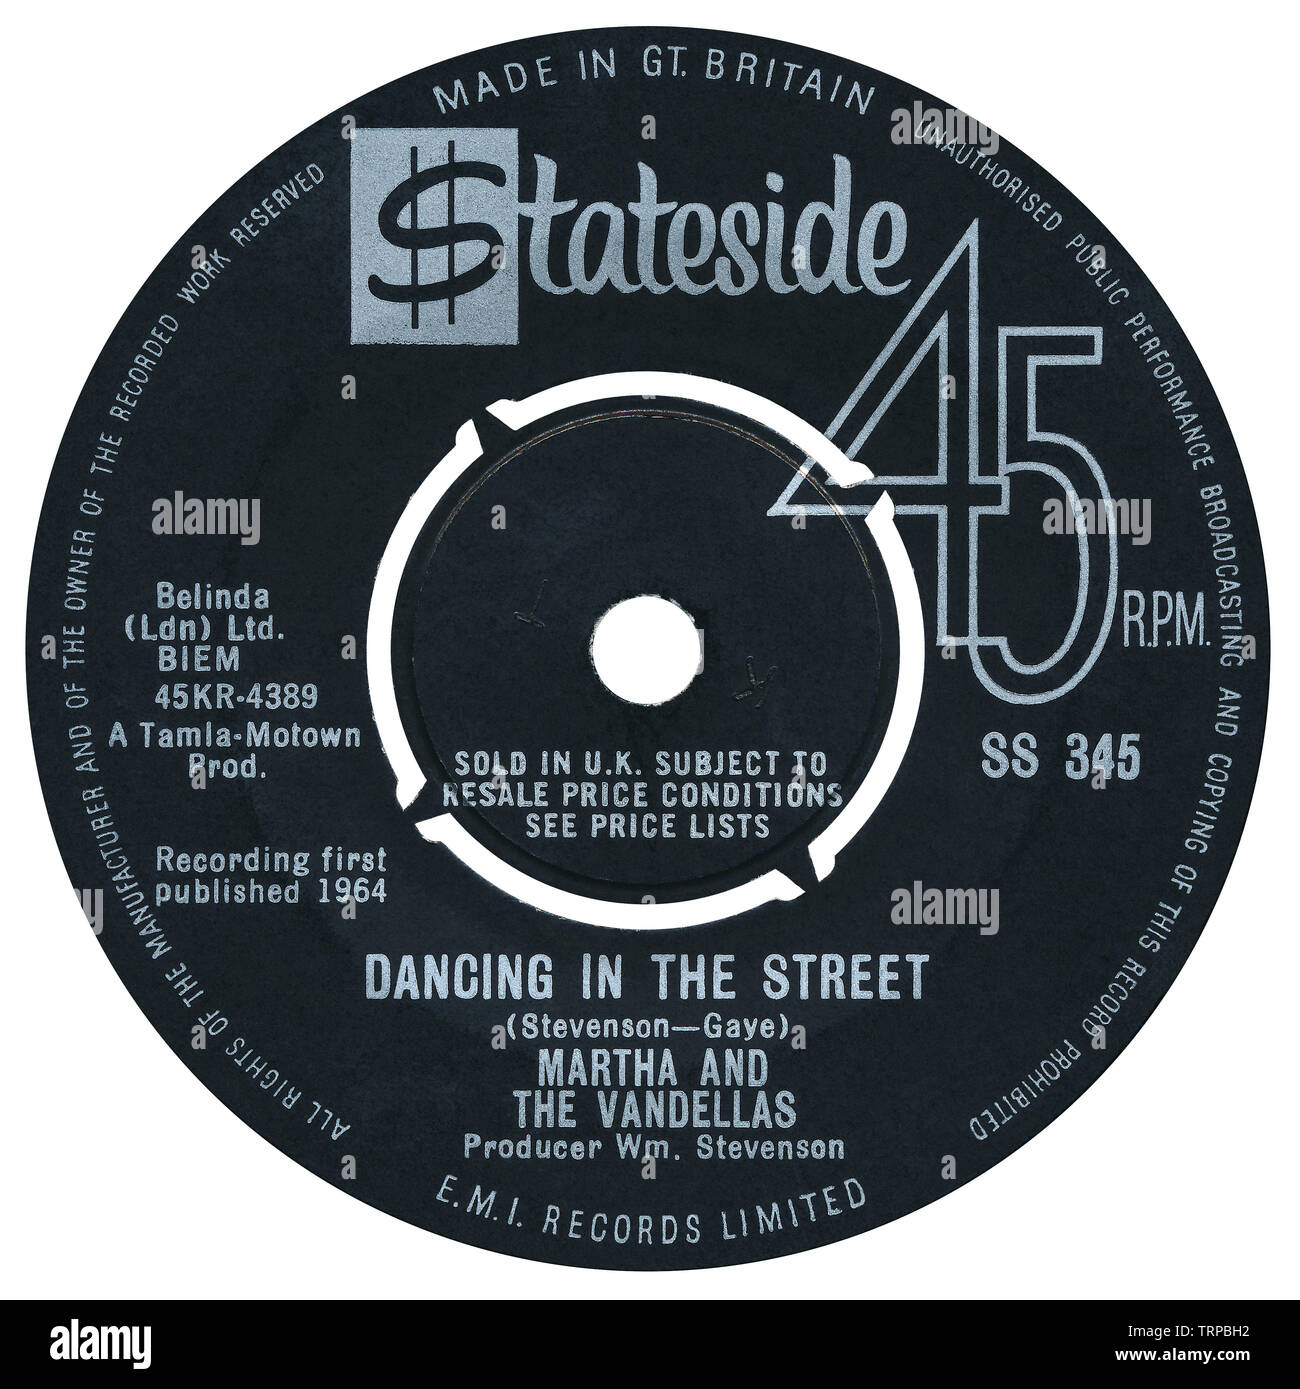 UK 45 rpm single of Dancing In The Street by Martha And The Vandellas on the Stateside label from 1964. Written by William Stevenson, Marvin Gaye and Ivy Jo Hunter and produced by William Stevenson. Stock Photo